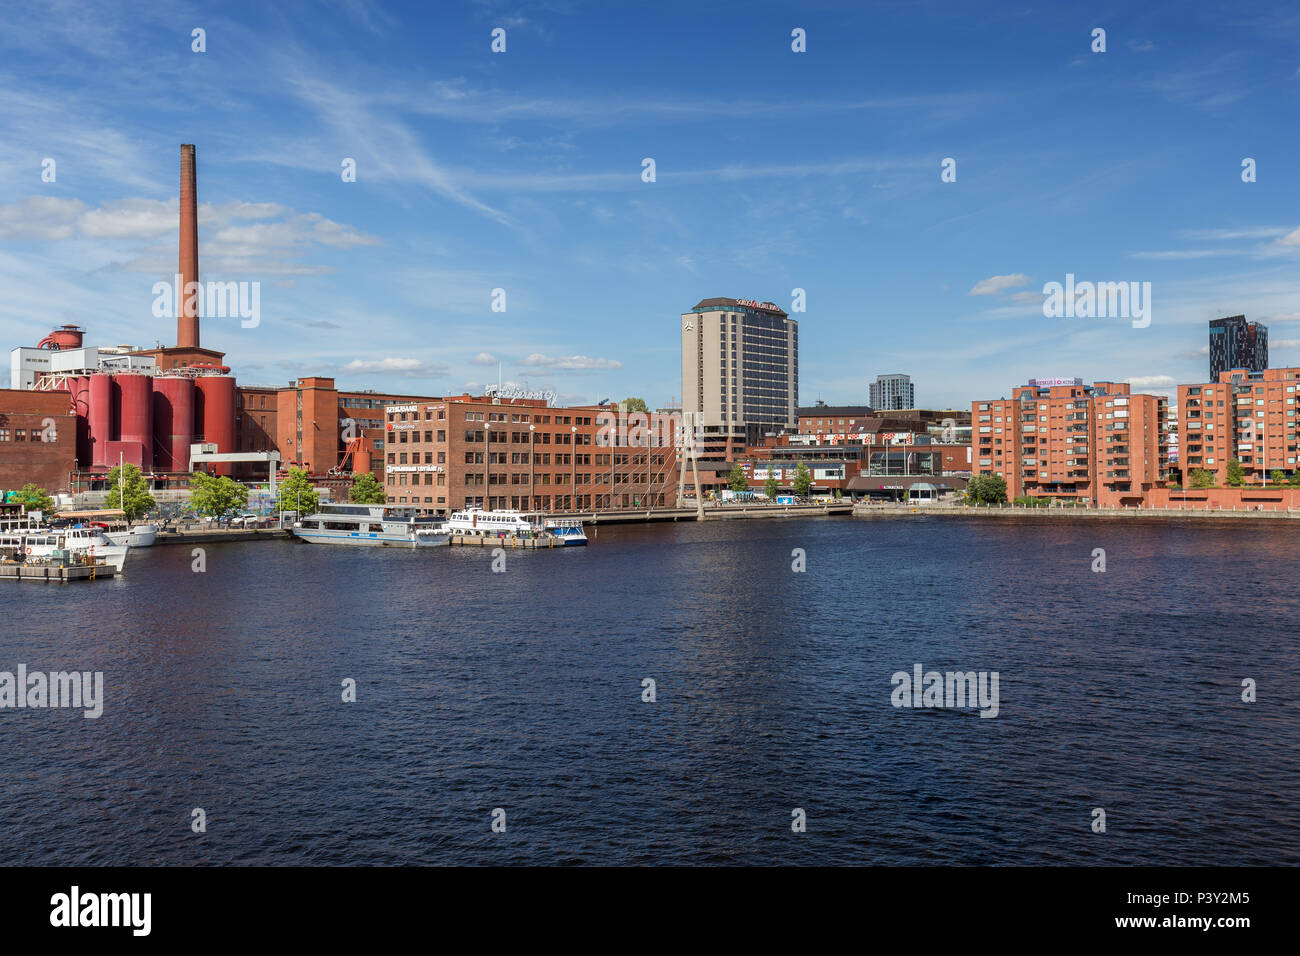 View of buildings and tourist boats at the Ratinan Suvanto (a bay or stream pool between Tammerkoski rapids and Lake Pyhäjärvi) in Tampere, Finland. - Stock Image